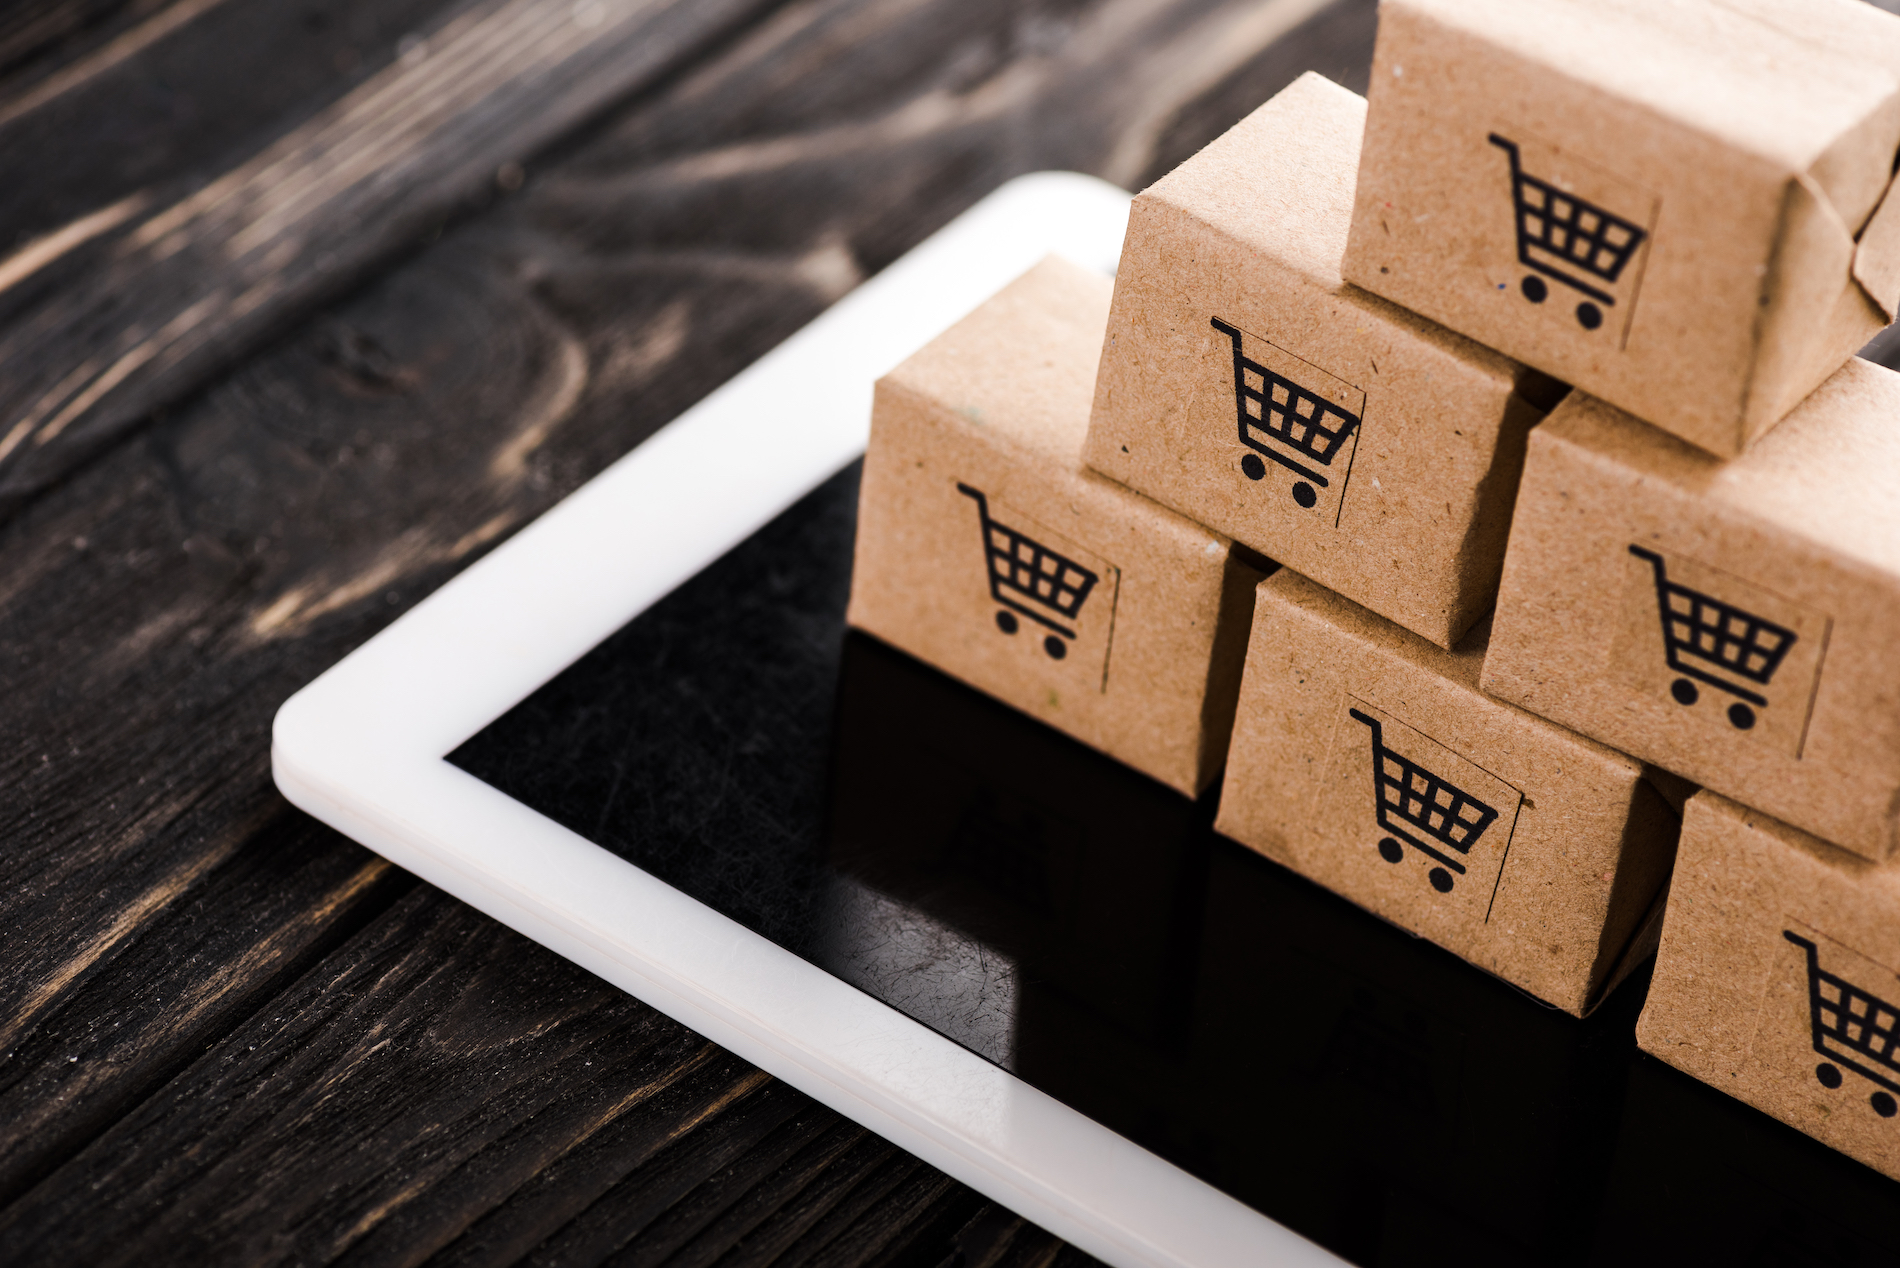 UAE and KSA e-commerce sectors dominate Middle East growth